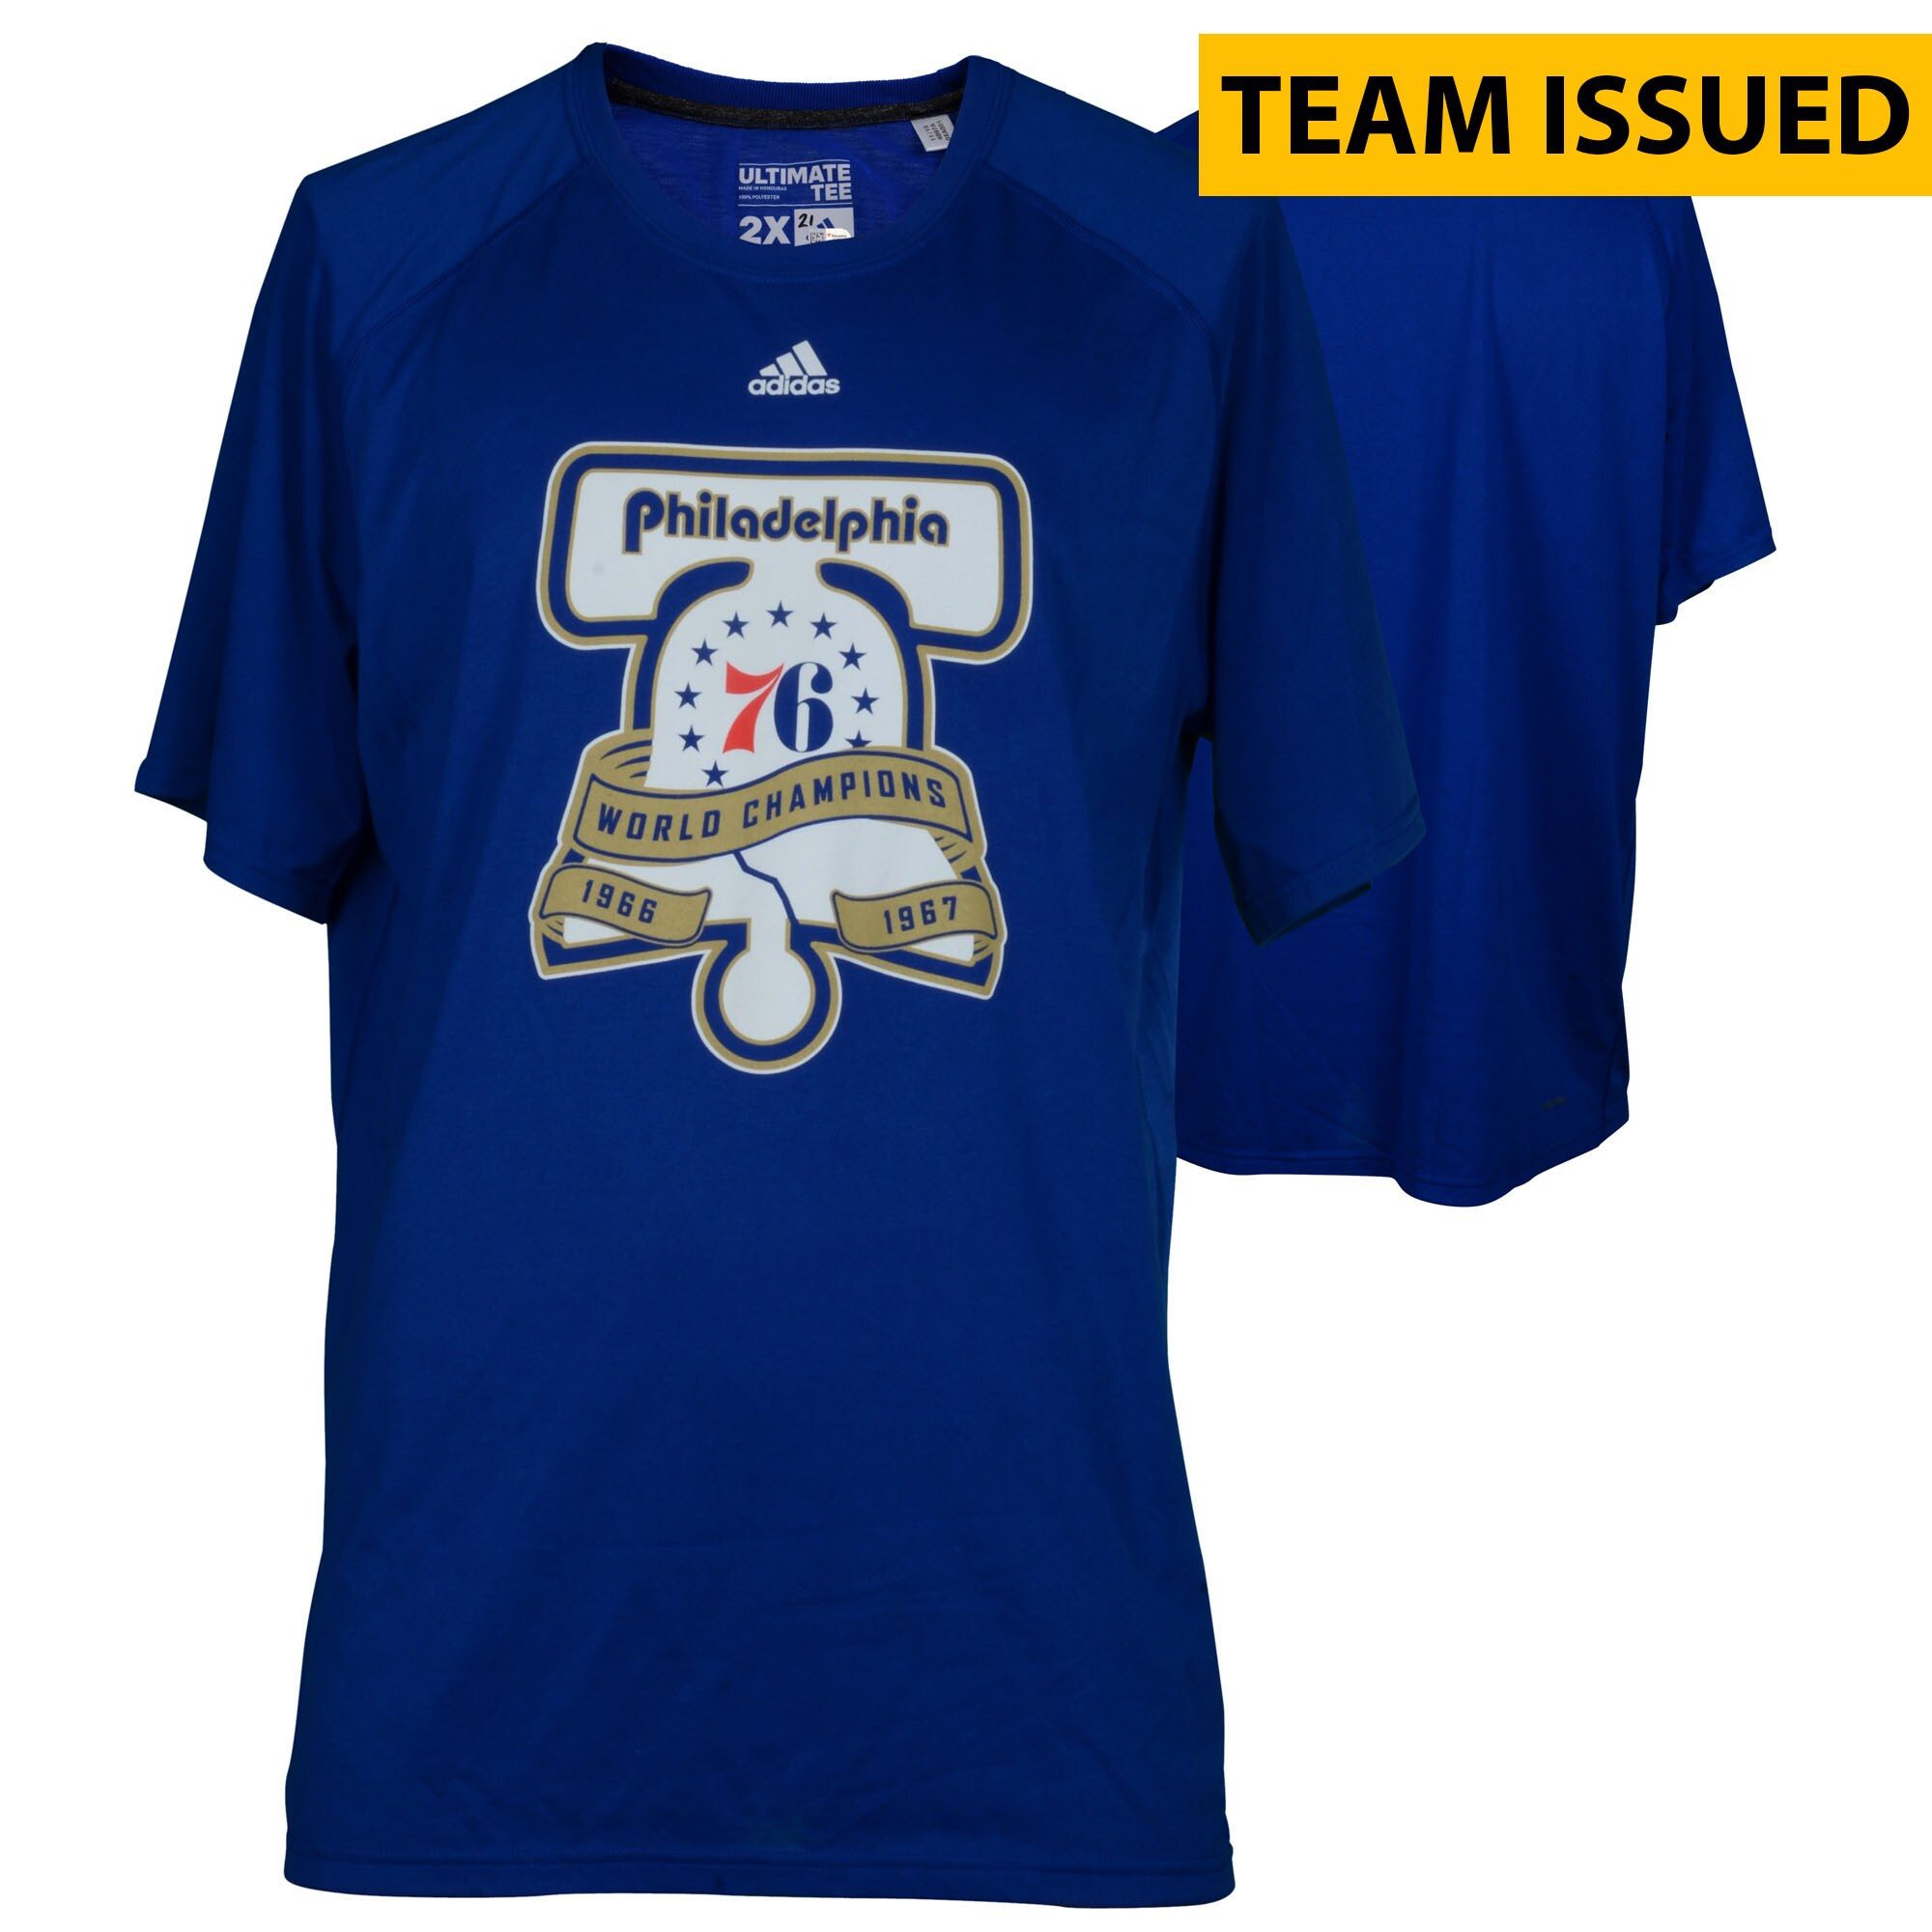 Philadelphia 76ers Fanatics Authentic Team-Issued Blue Liberty Bell Champions Shooter Shirt from the 2016-17 NBA Season - Size Large